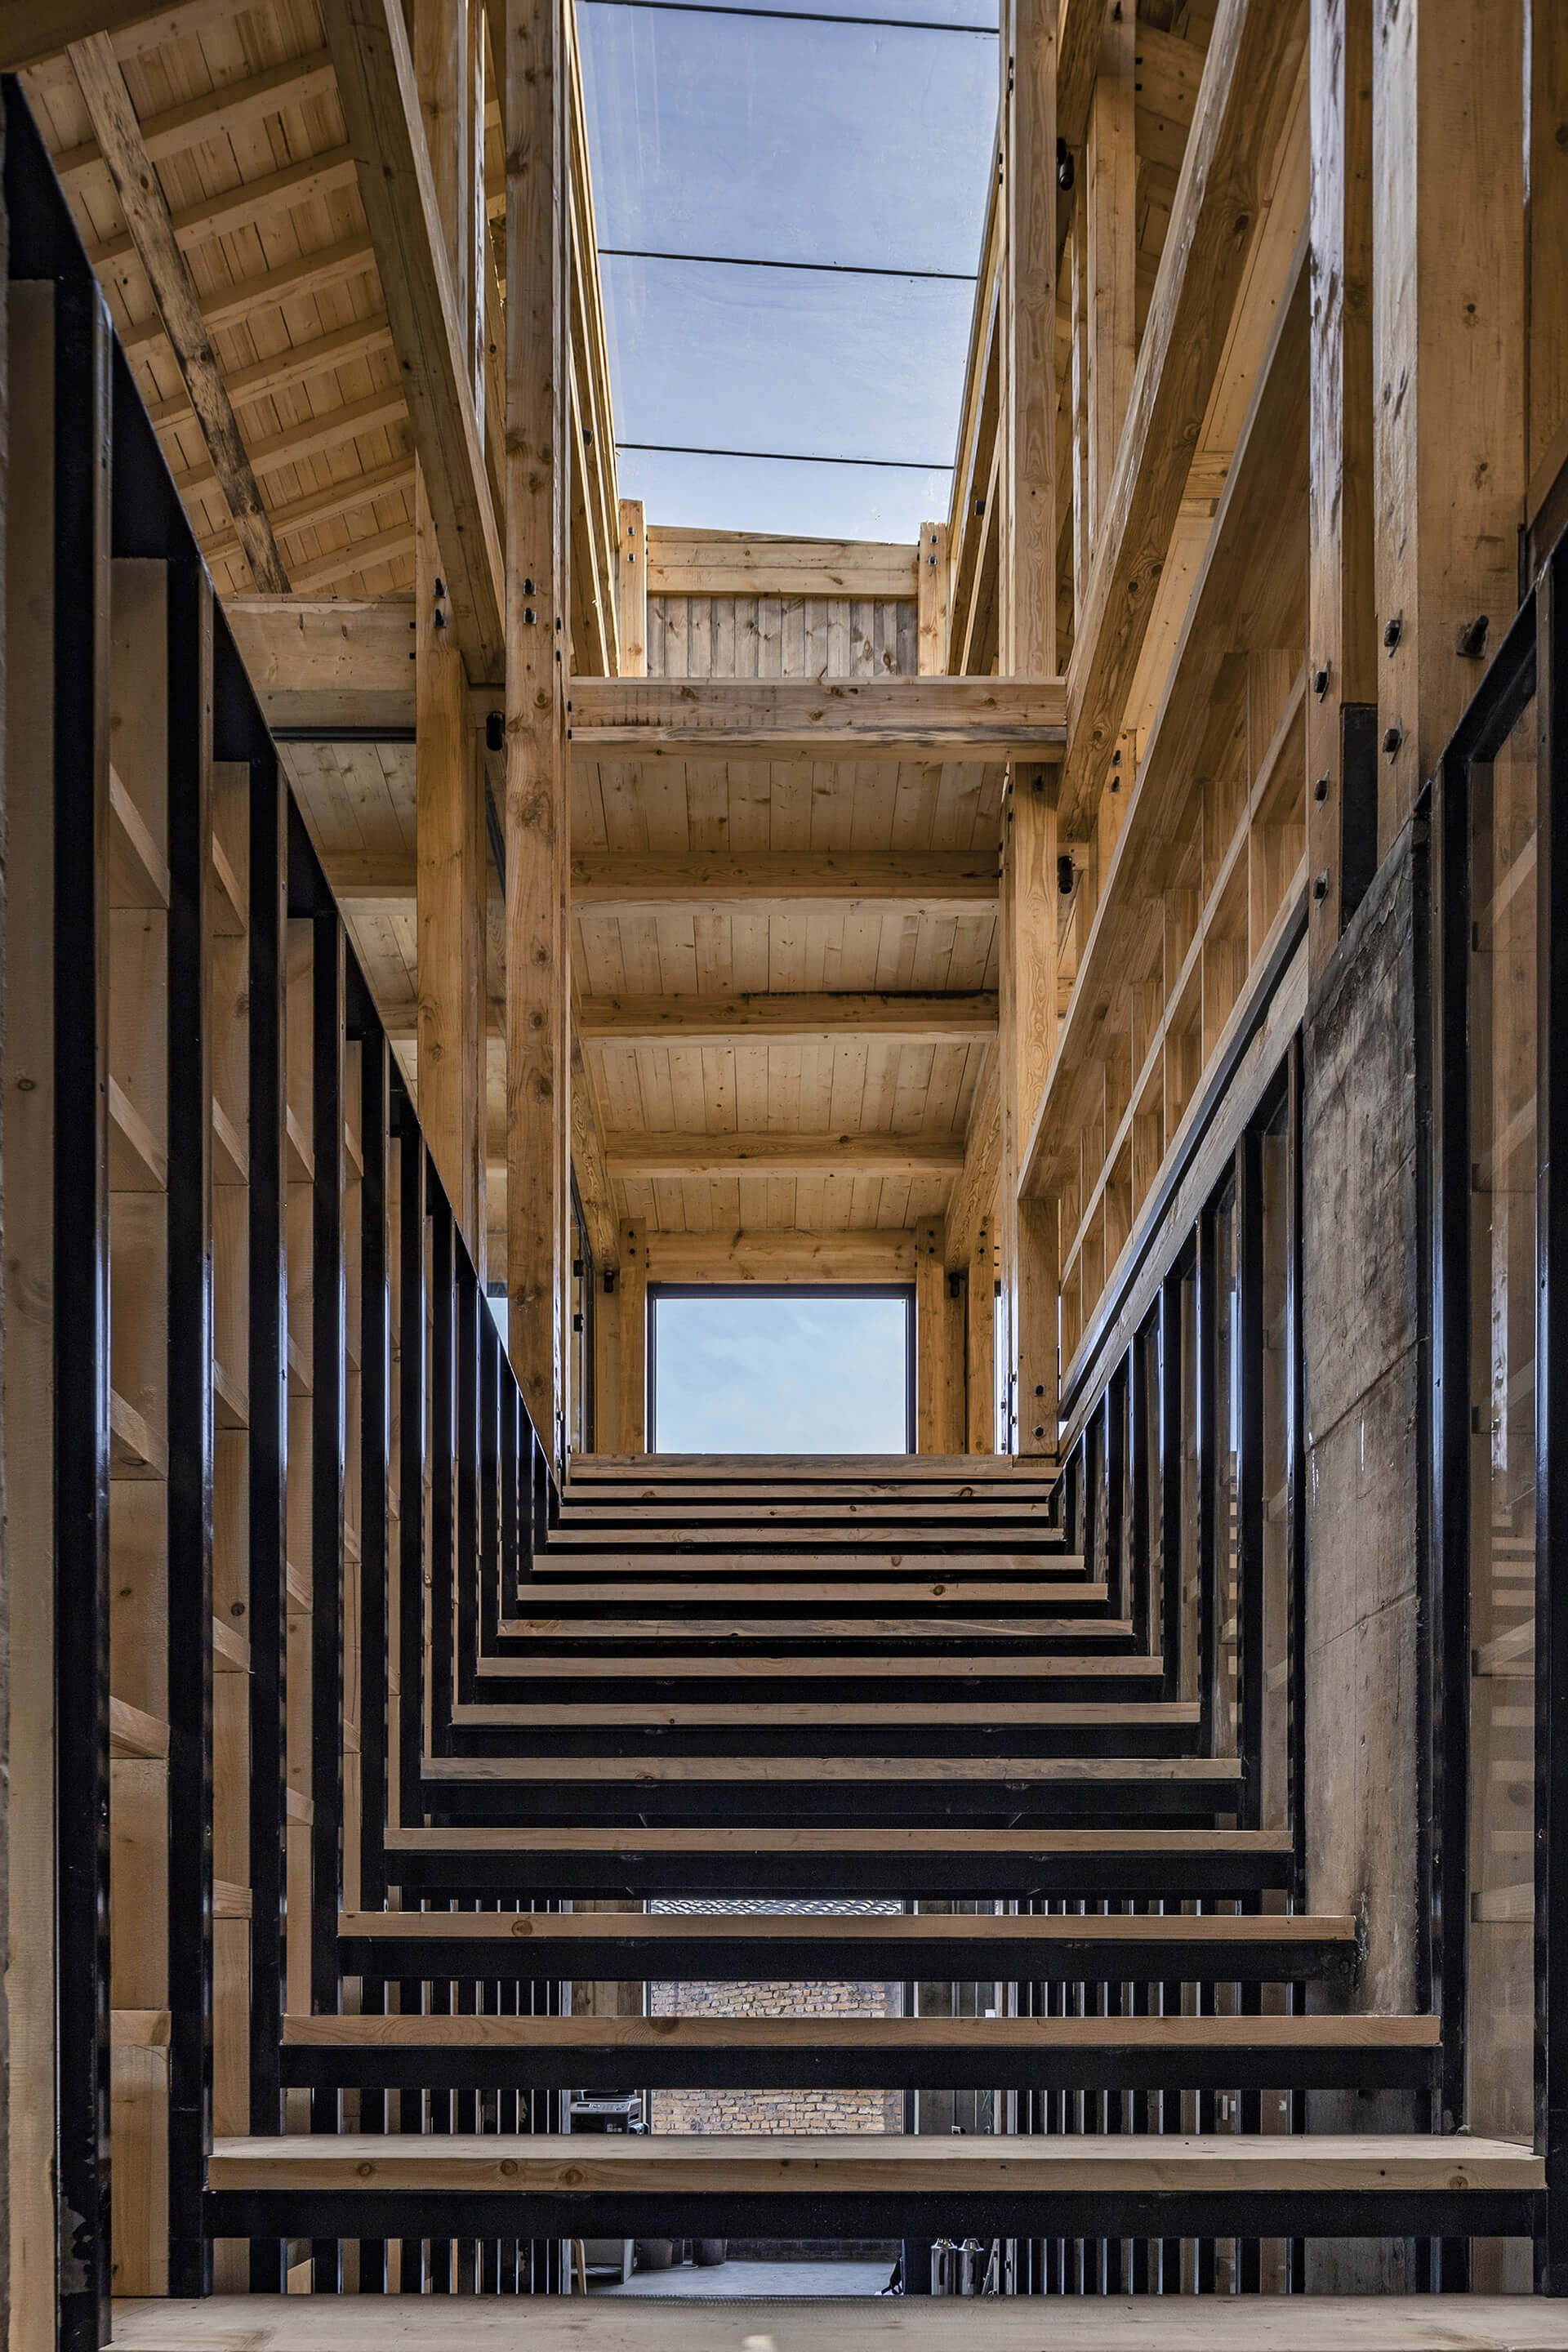 A staircase with 16 steps inside the community centre | Party and Public Service Center of Yuanheguan Village by LUO Studio | STIRworld